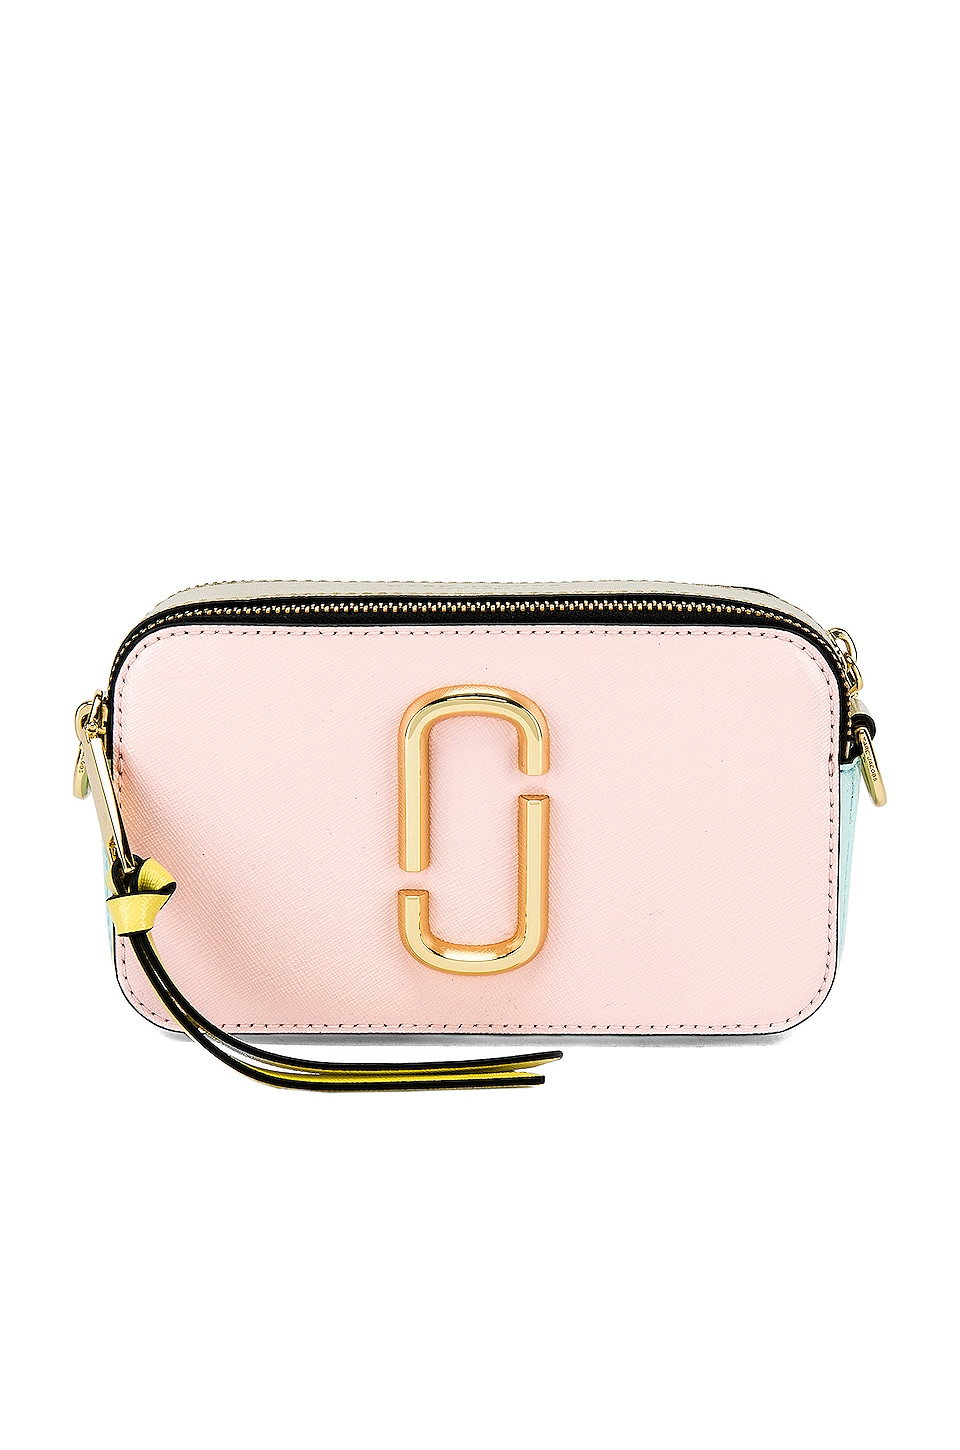 Marc Jacobs Snapshot Crossbody in Blush Multi